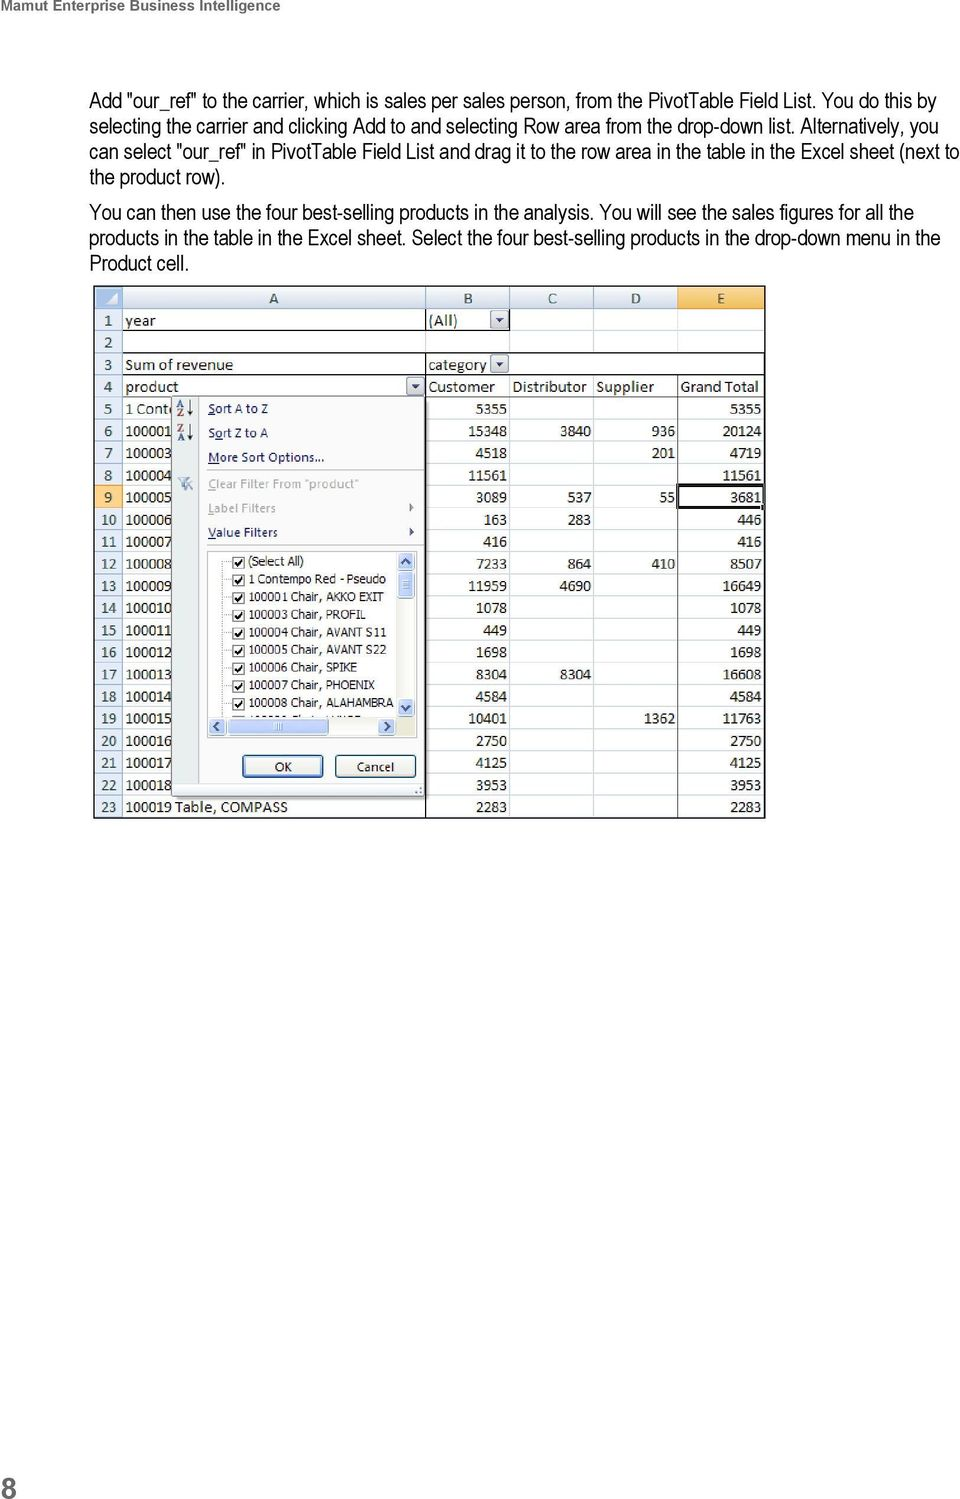 "Alternatively, you can select ""our_ref"" in PivotTable Field List and drag it to the row area in the table in the Excel sheet (next to the product row)."